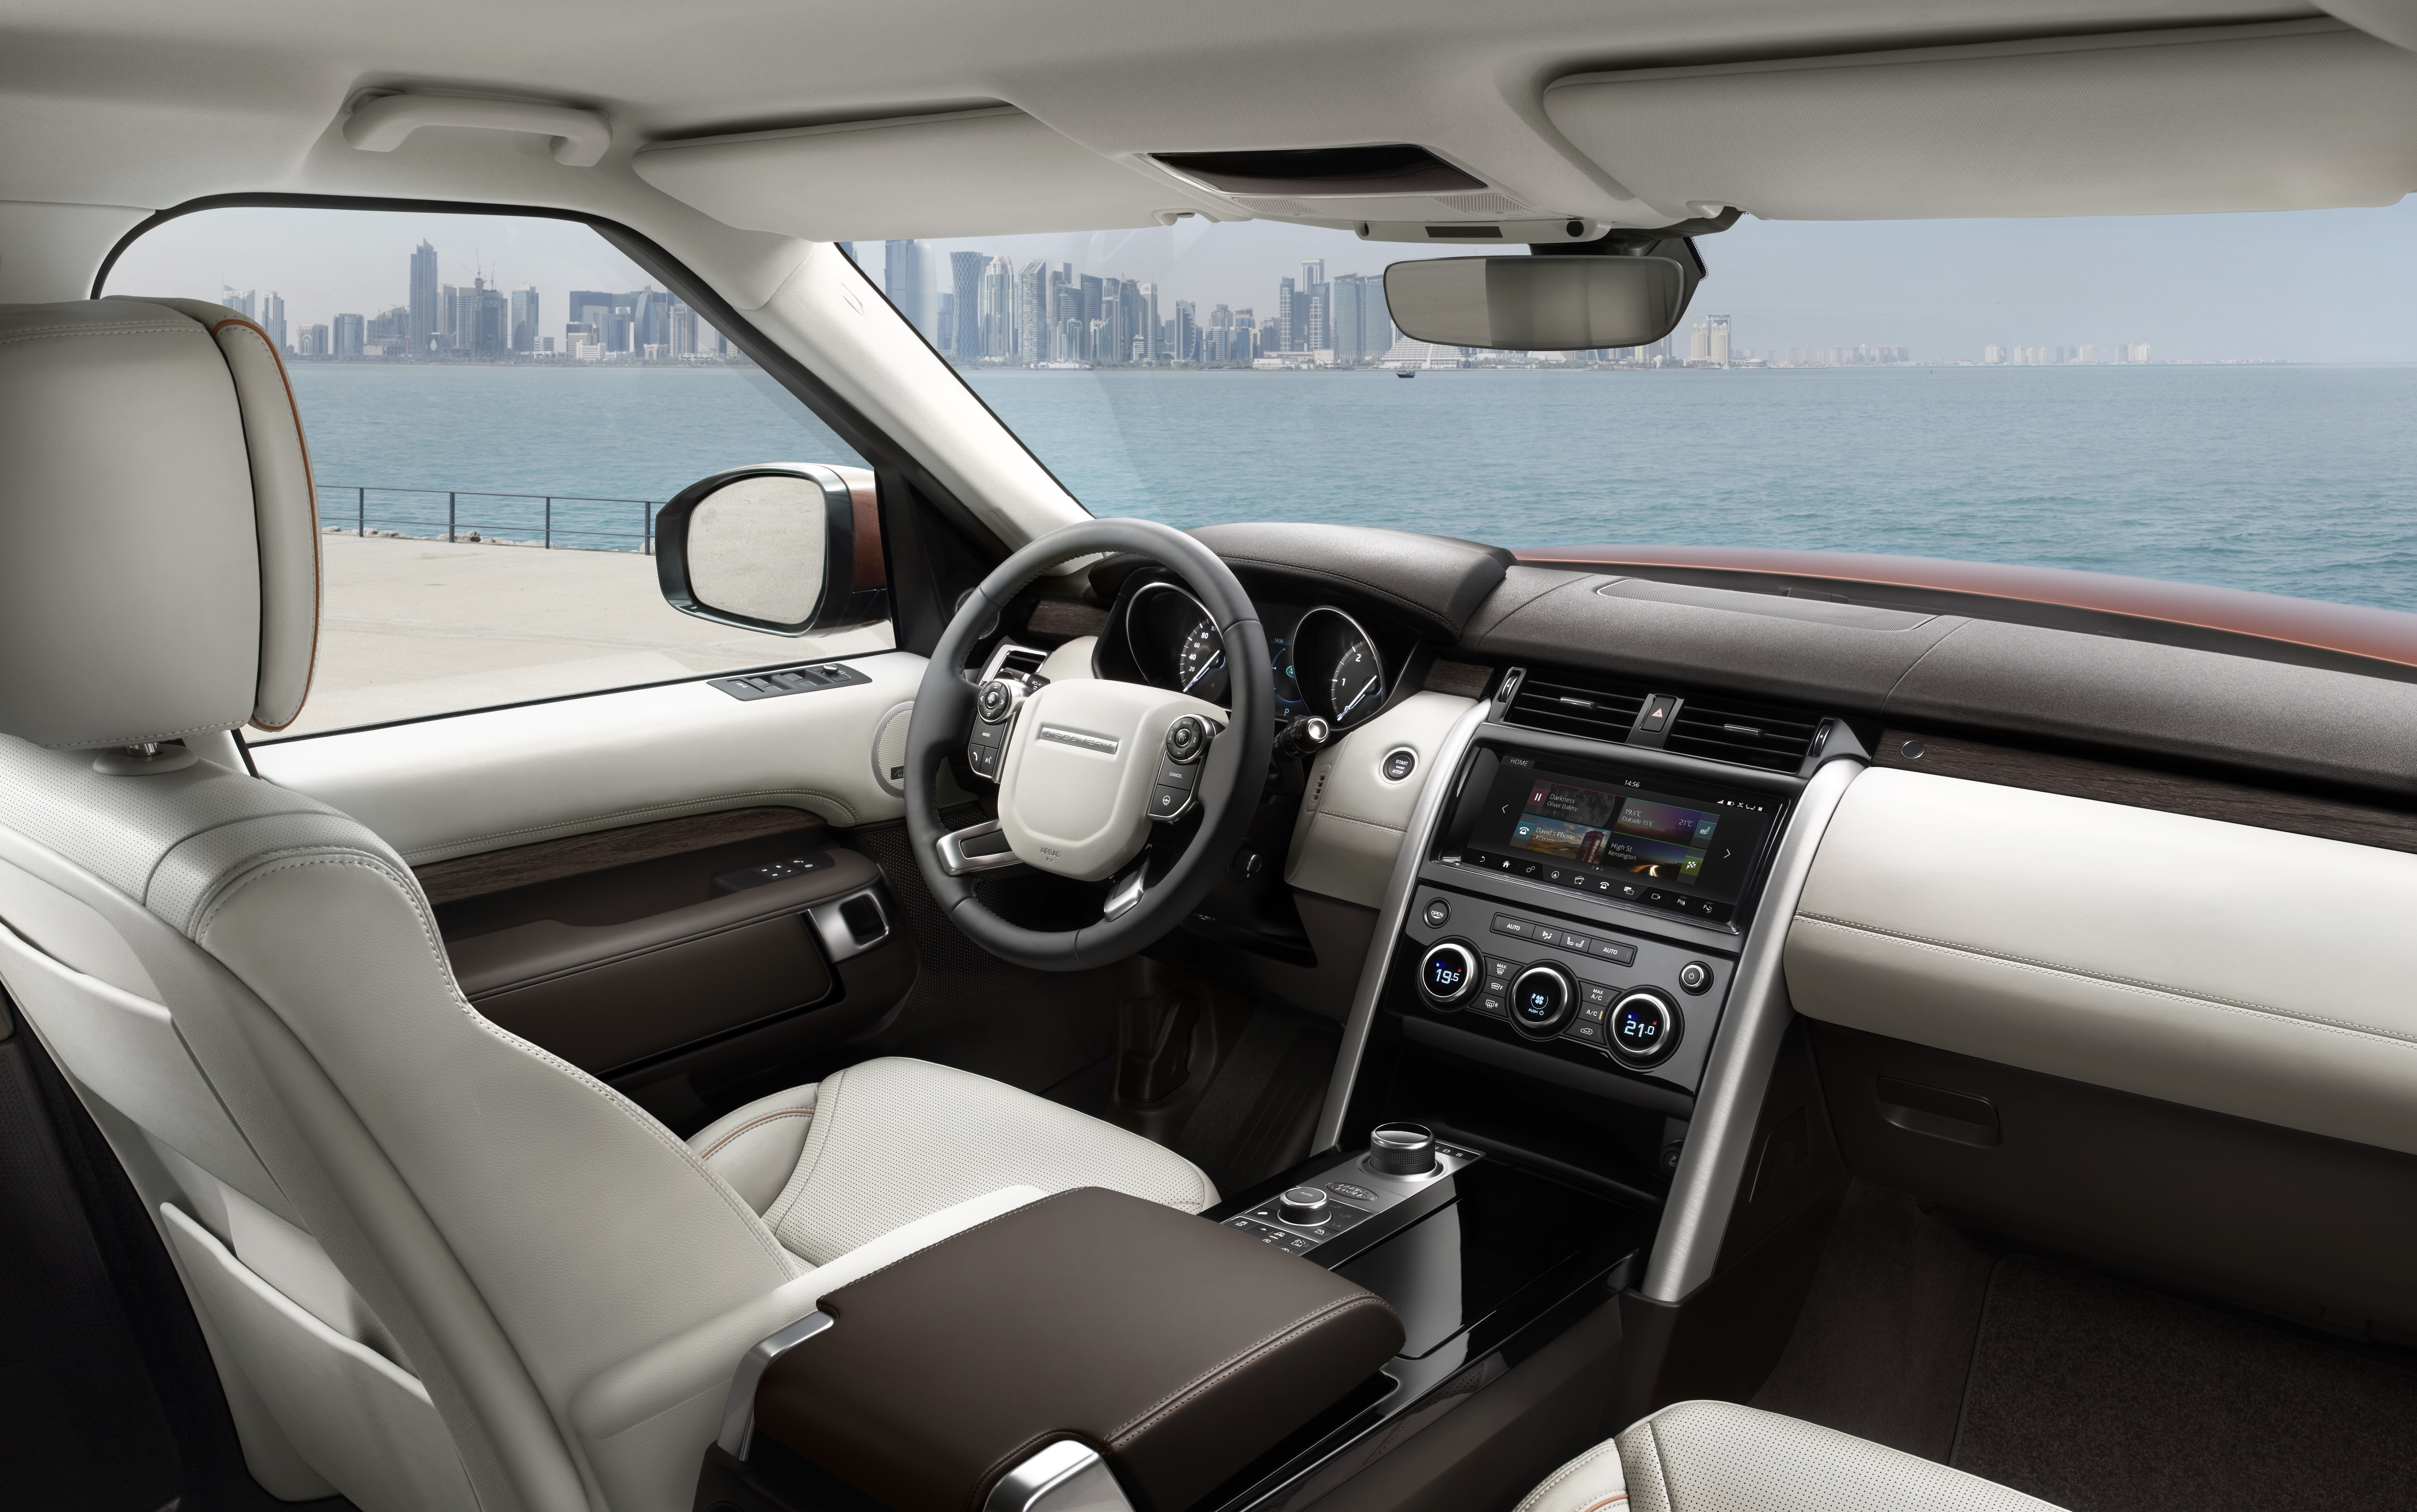 Land Rover Discovery (interior)